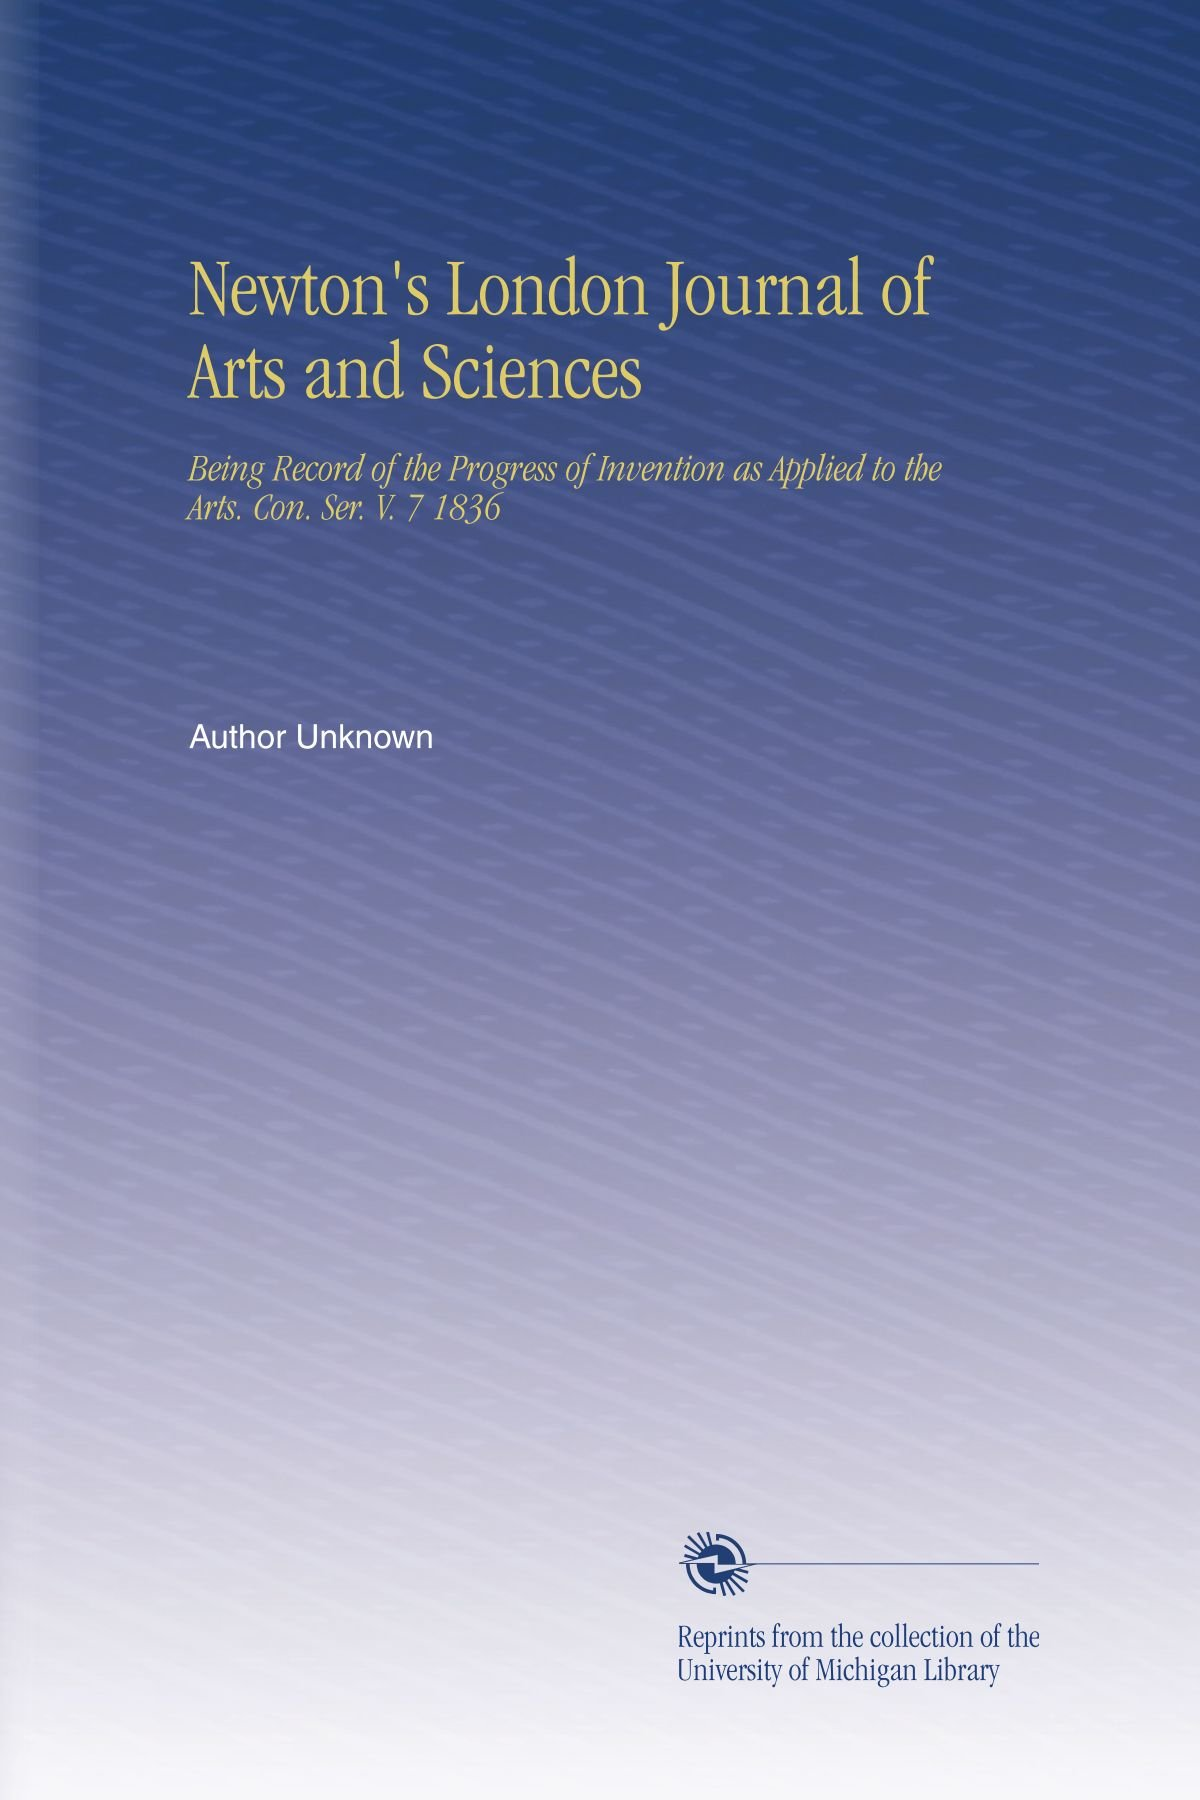 Download Newton's London Journal of Arts and Sciences: Being Record of the Progress of Invention as Applied to the Arts. Con. Ser. V. 7 1836 pdf